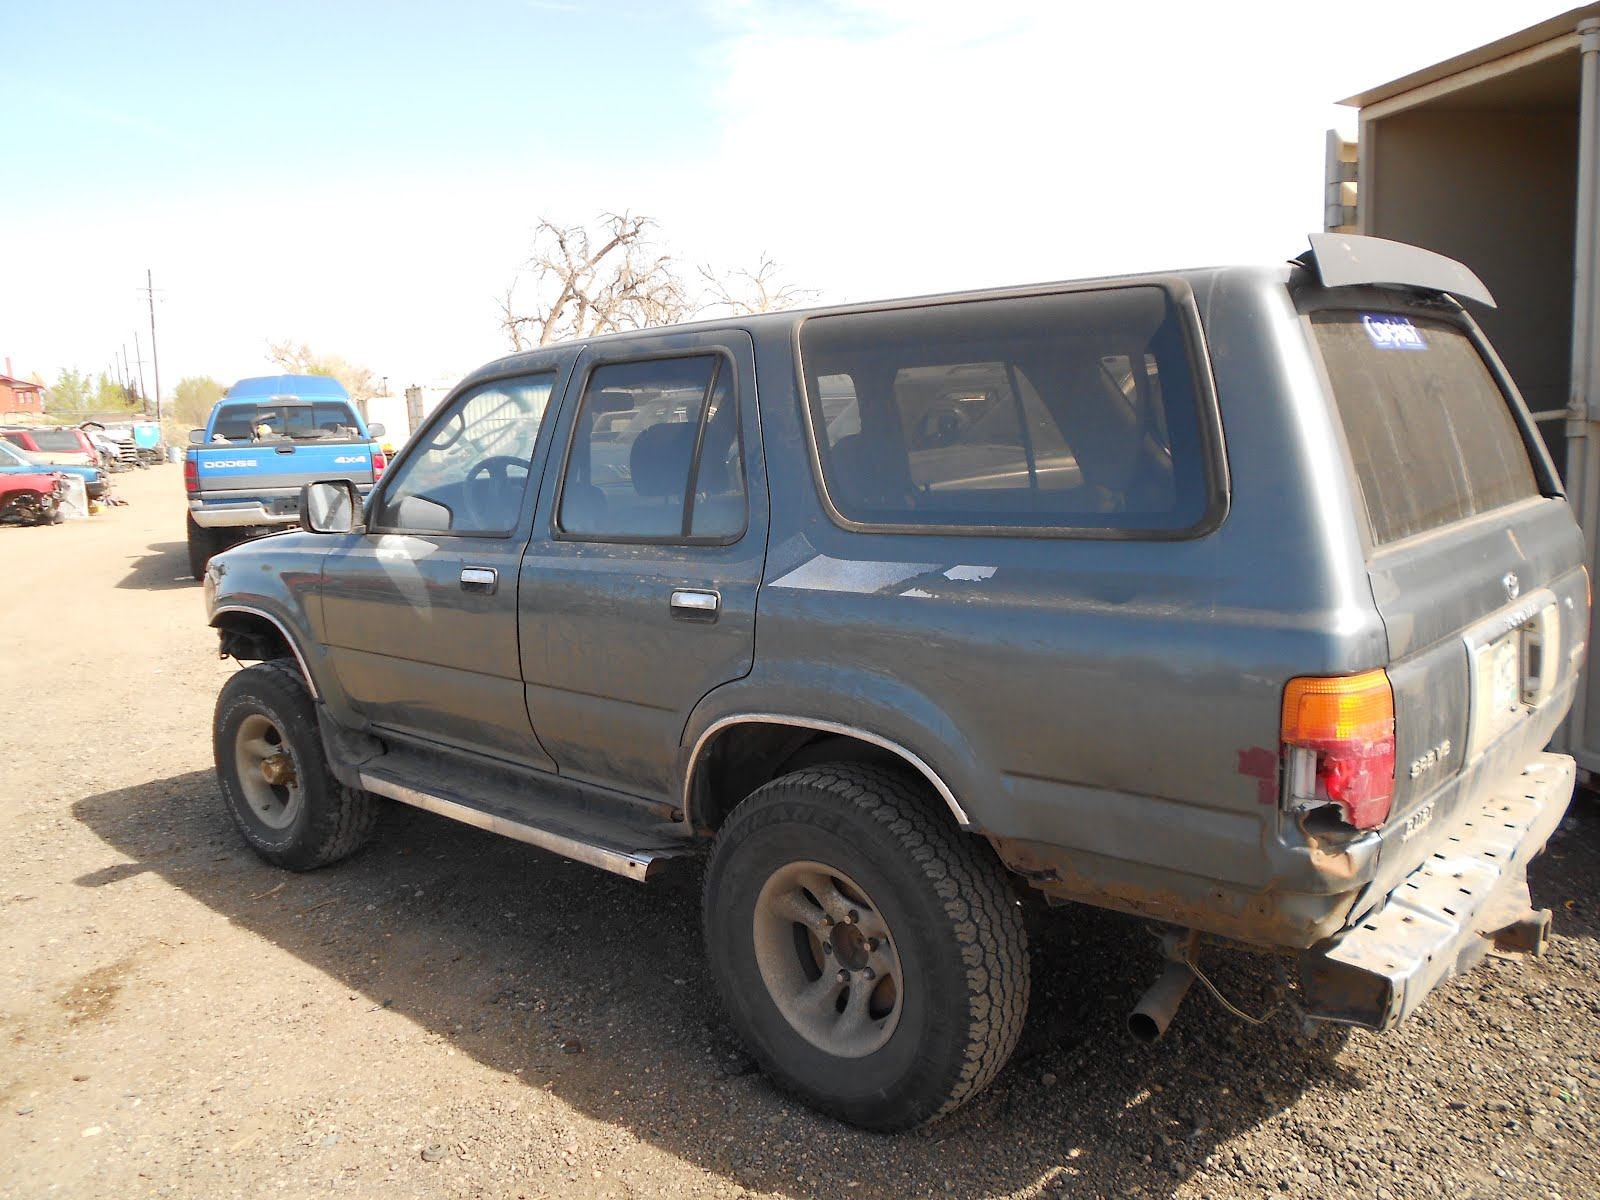 new arrivals at jim 39 s used toyota truck parts 1992 toyota. Black Bedroom Furniture Sets. Home Design Ideas